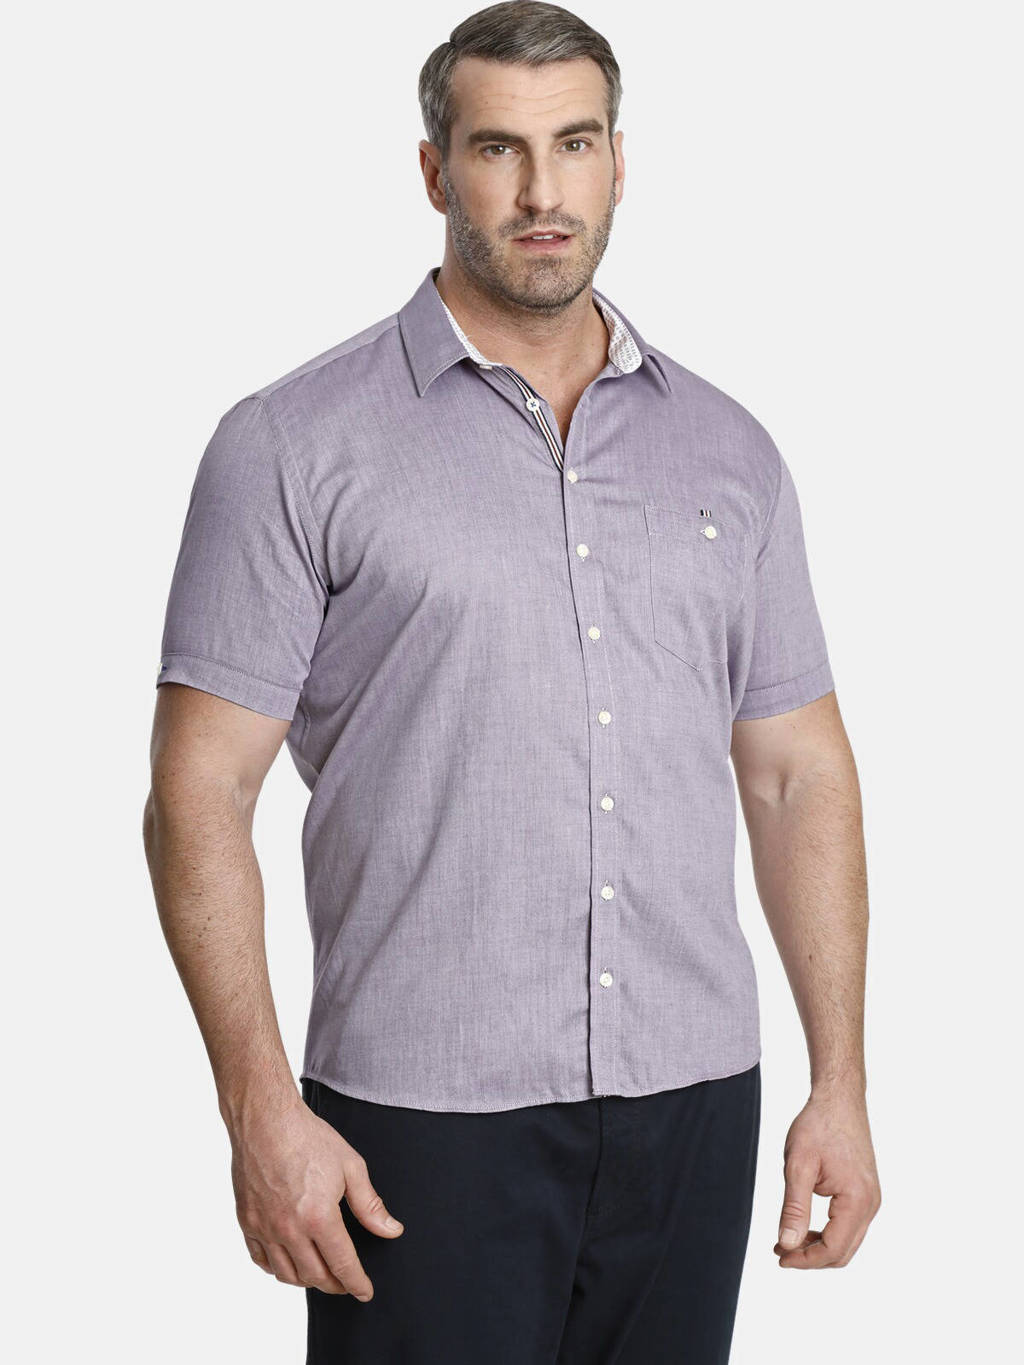 Charles Colby overhemd YVEN Plus Size donkerblauw, Donkerblauw